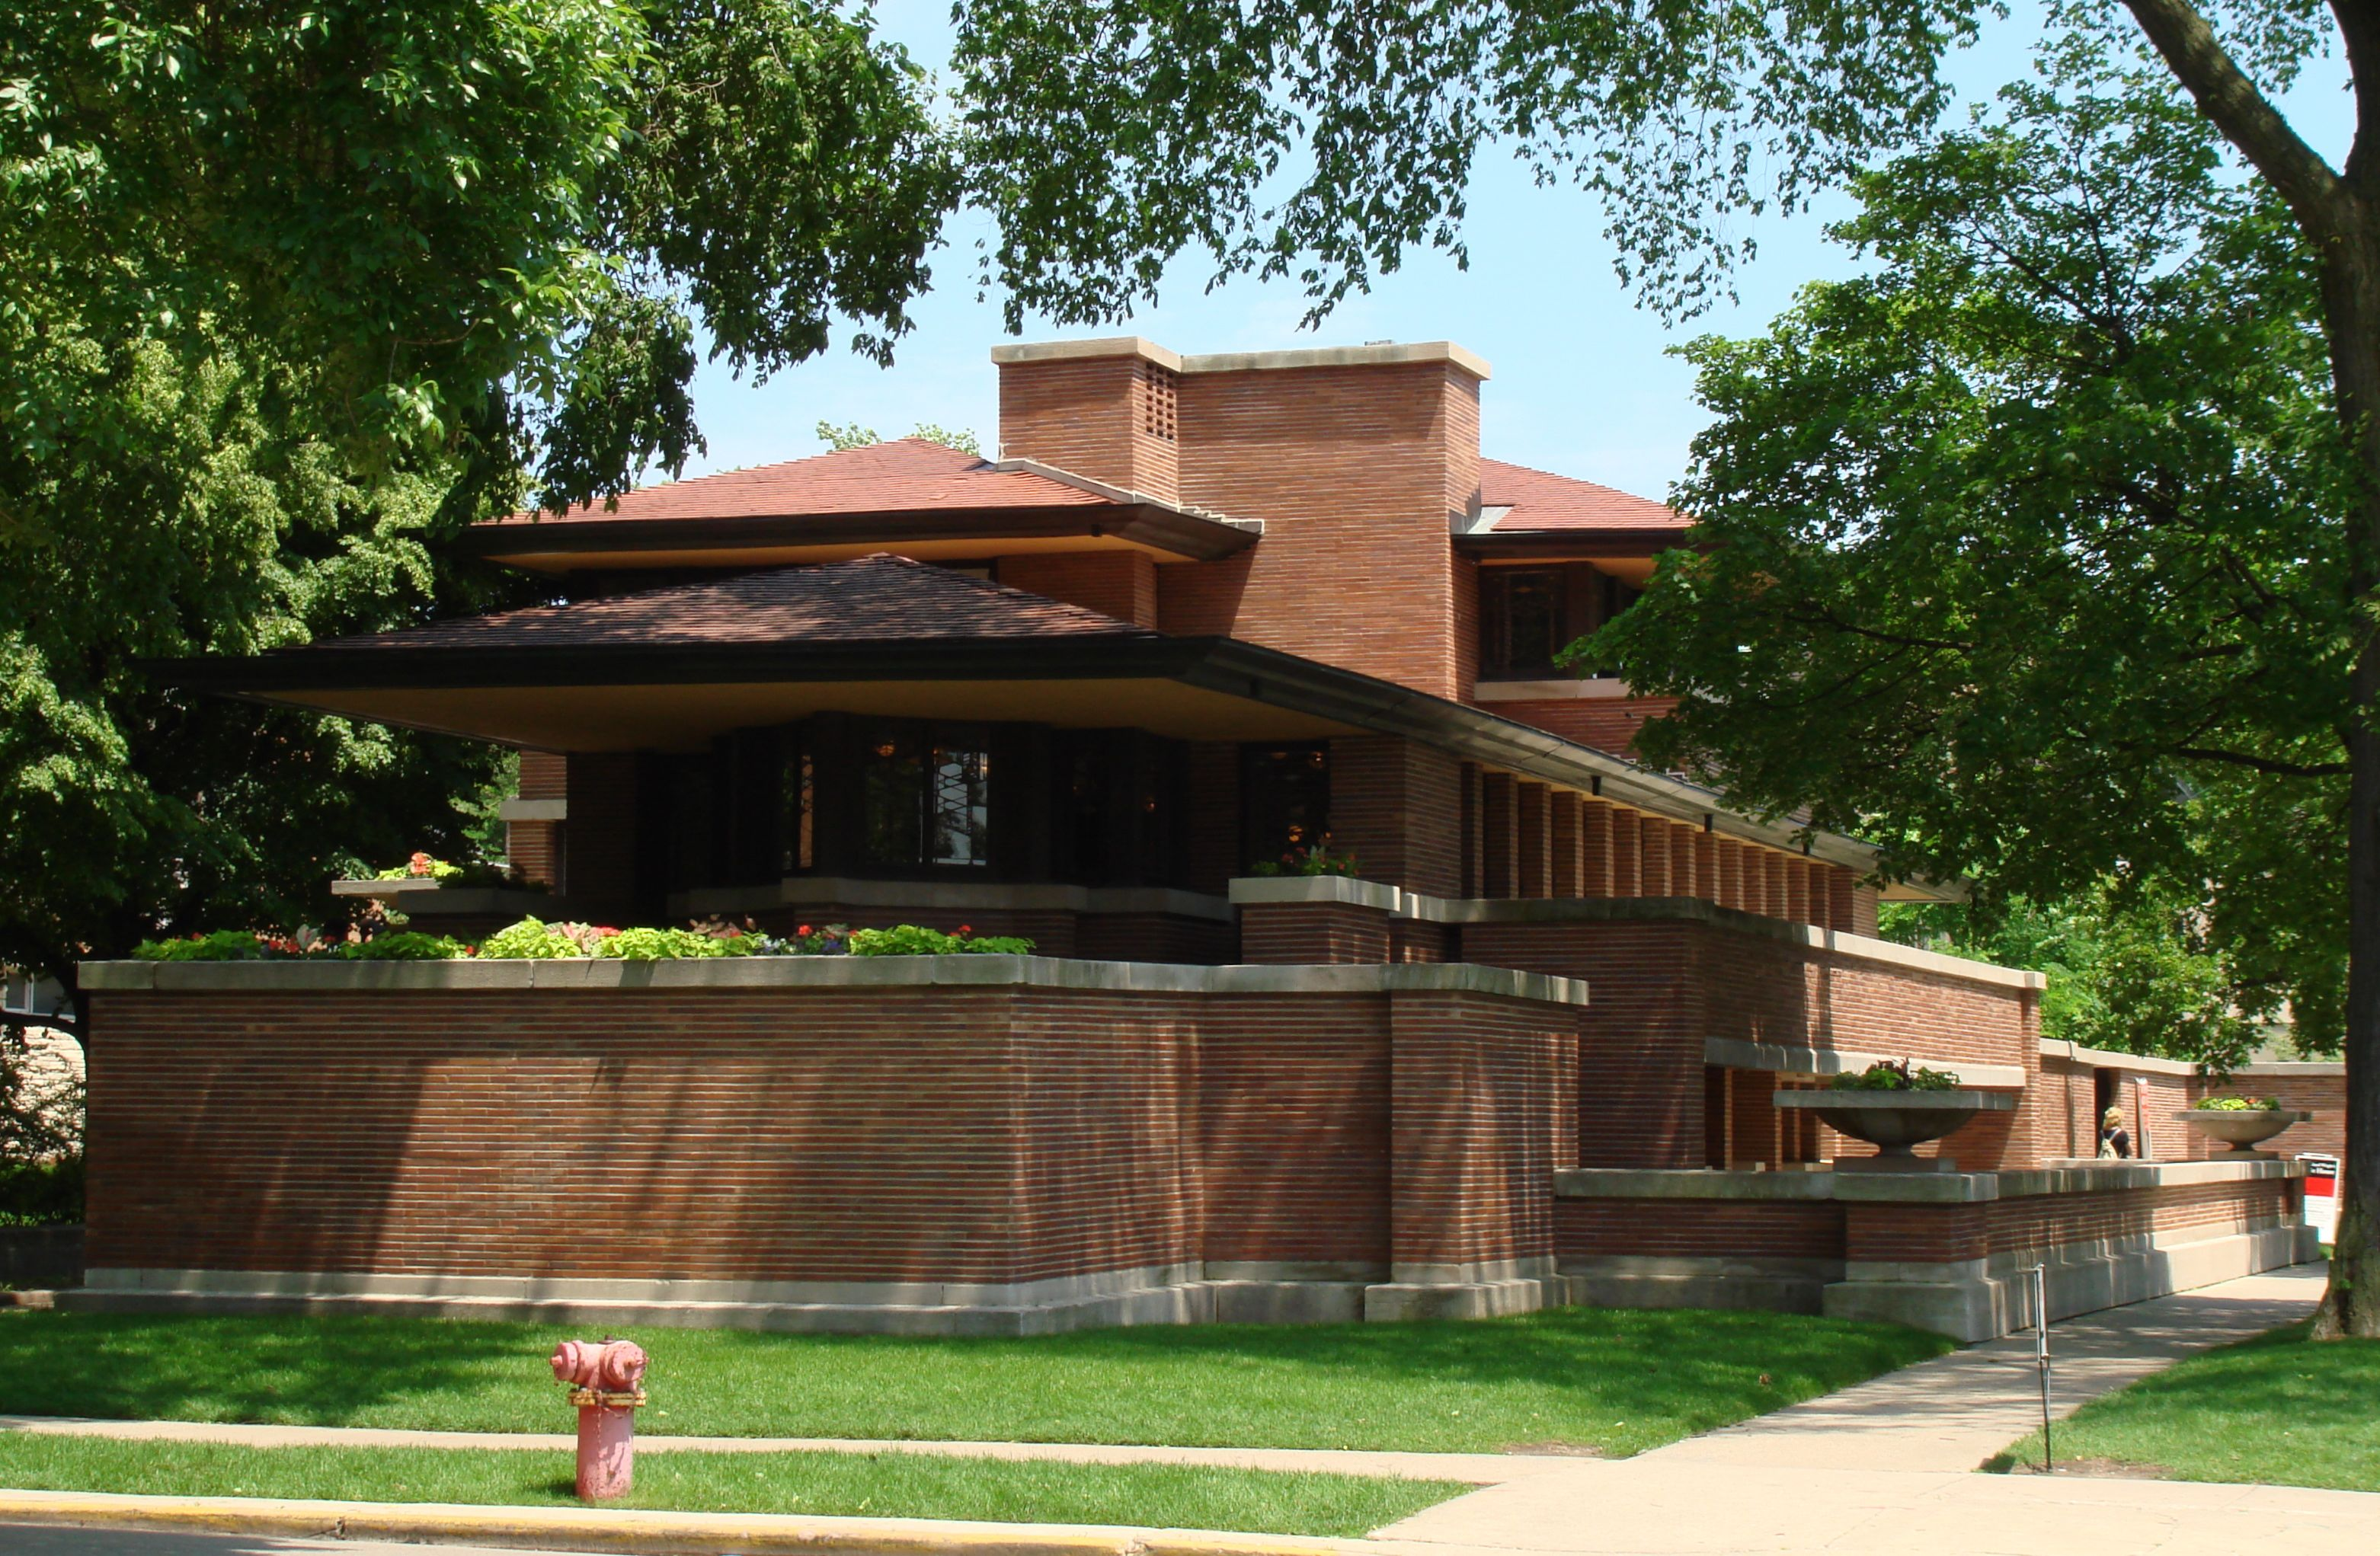 Chicago the robie house and frank lloyd wright the for Frank lloyd wright house design